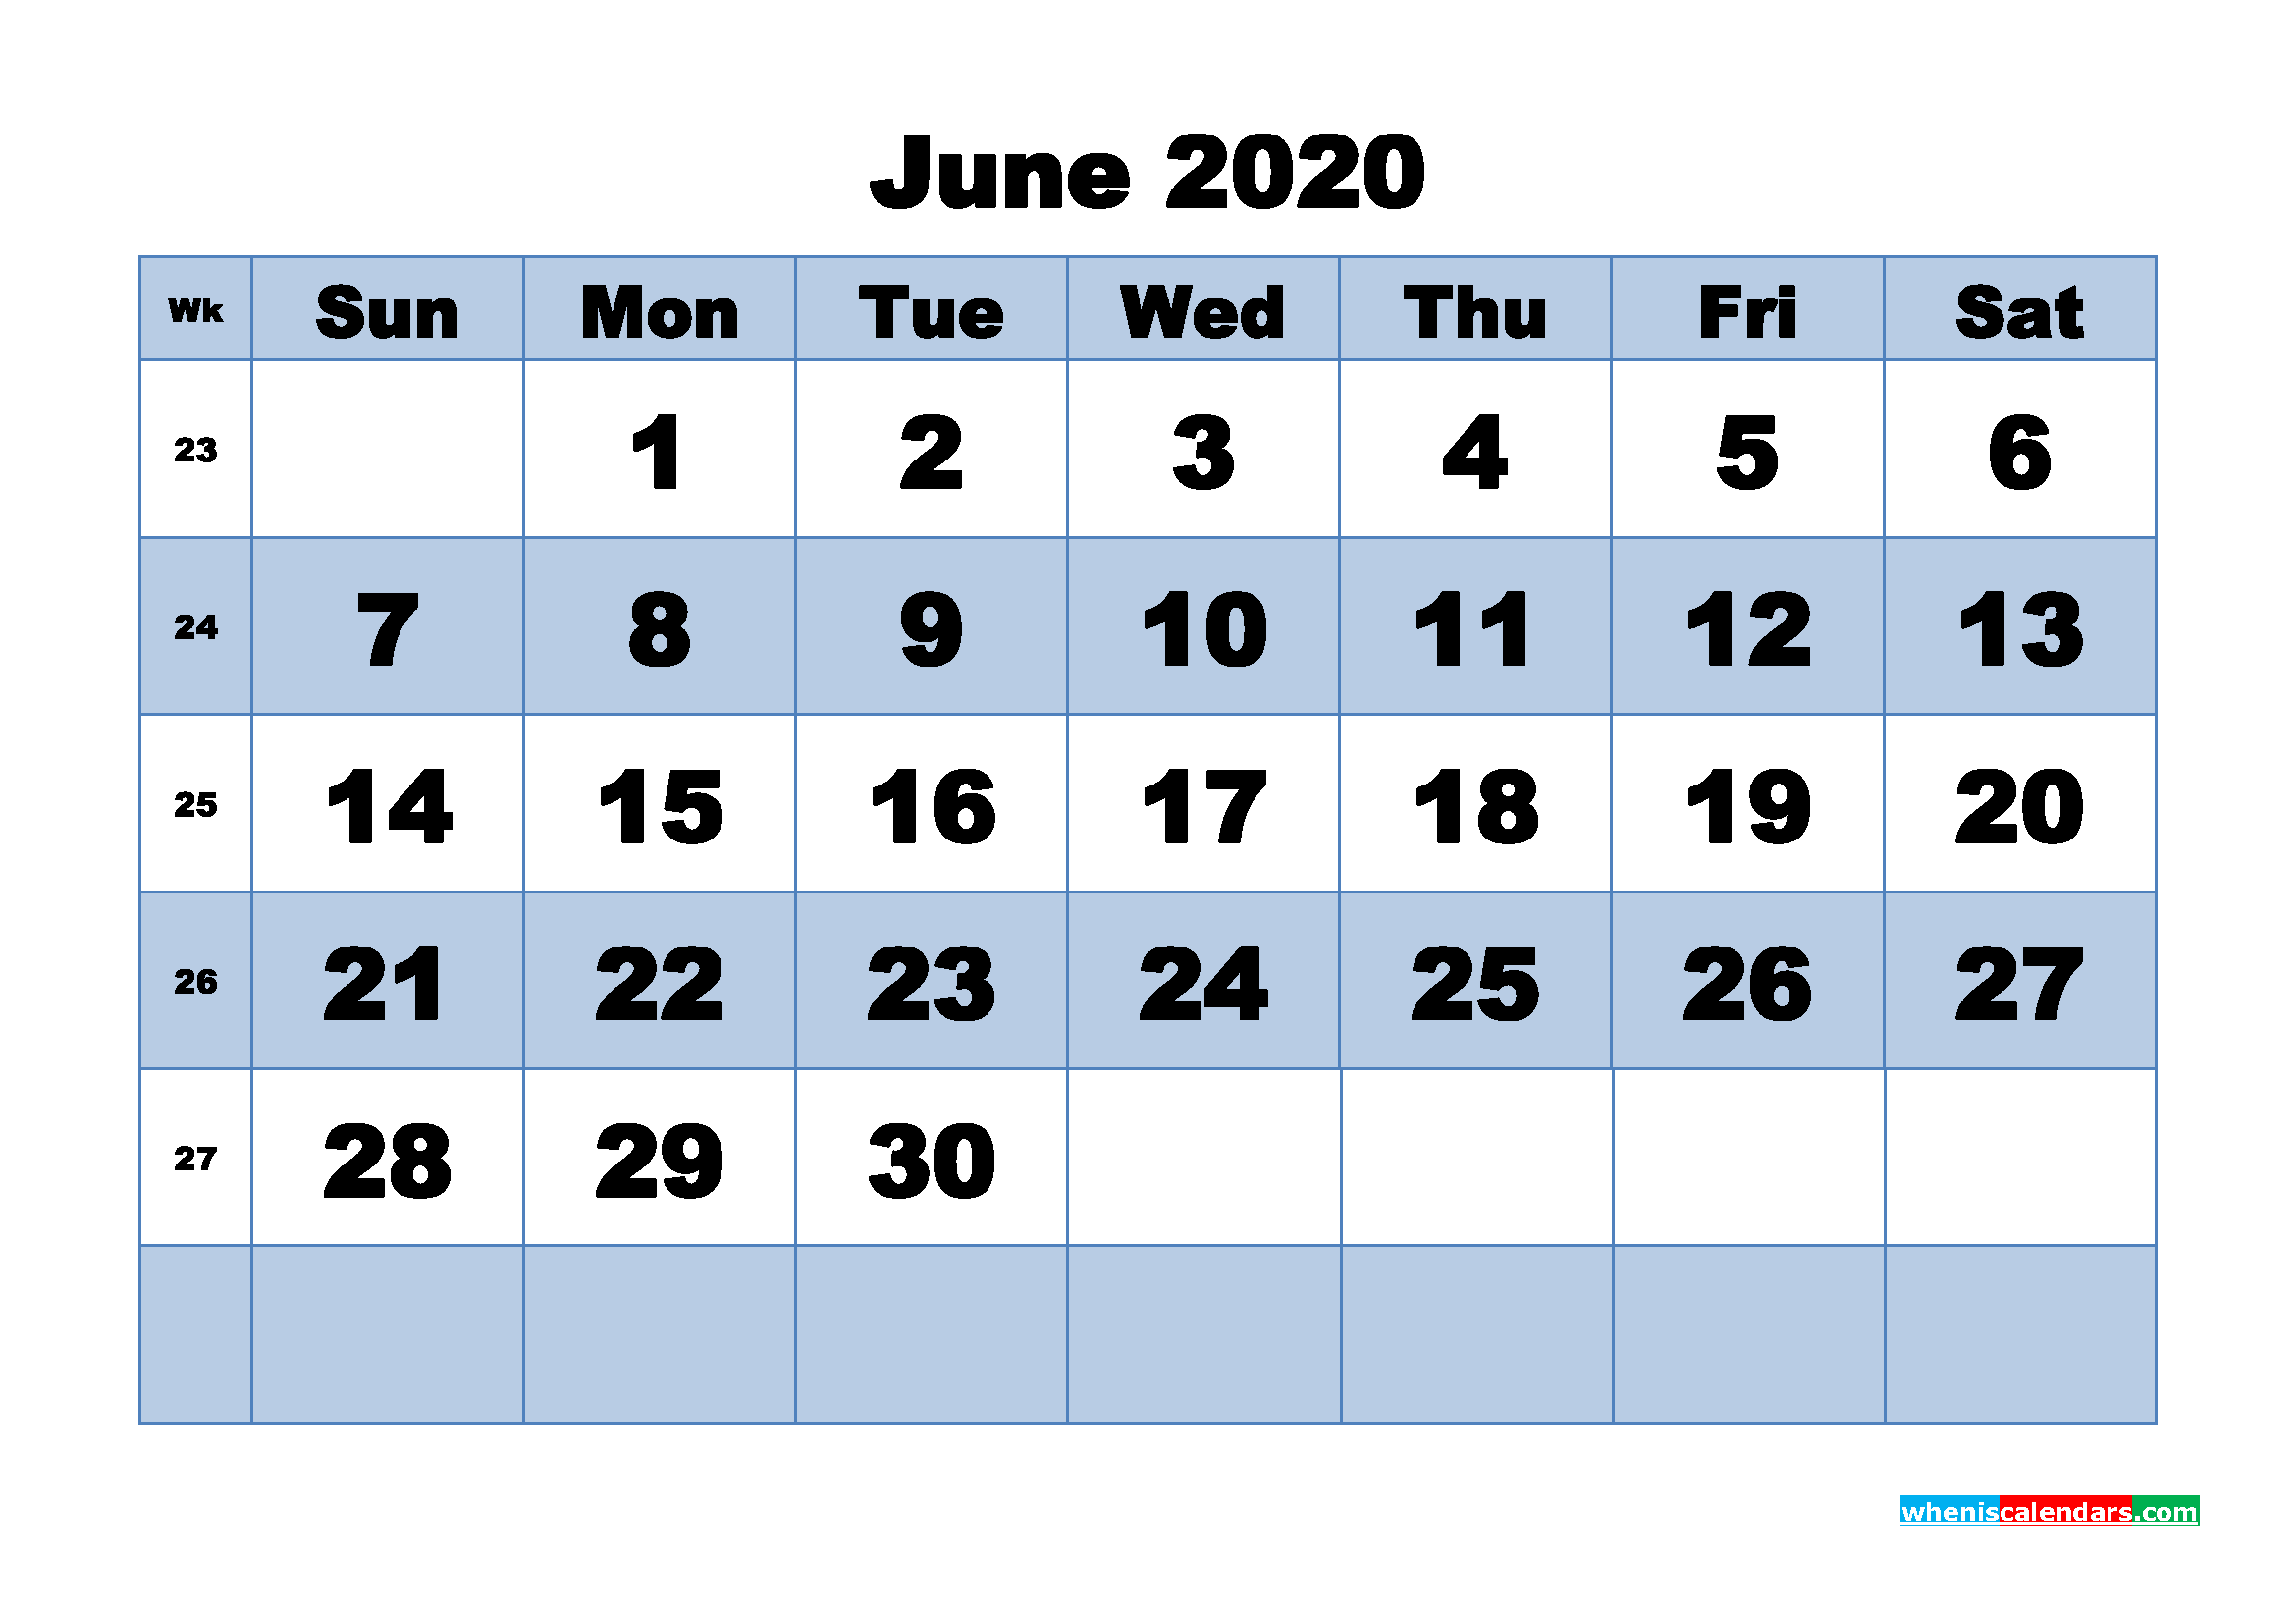 June Printable Calendar 2020 PDF, Word - No.m20b450